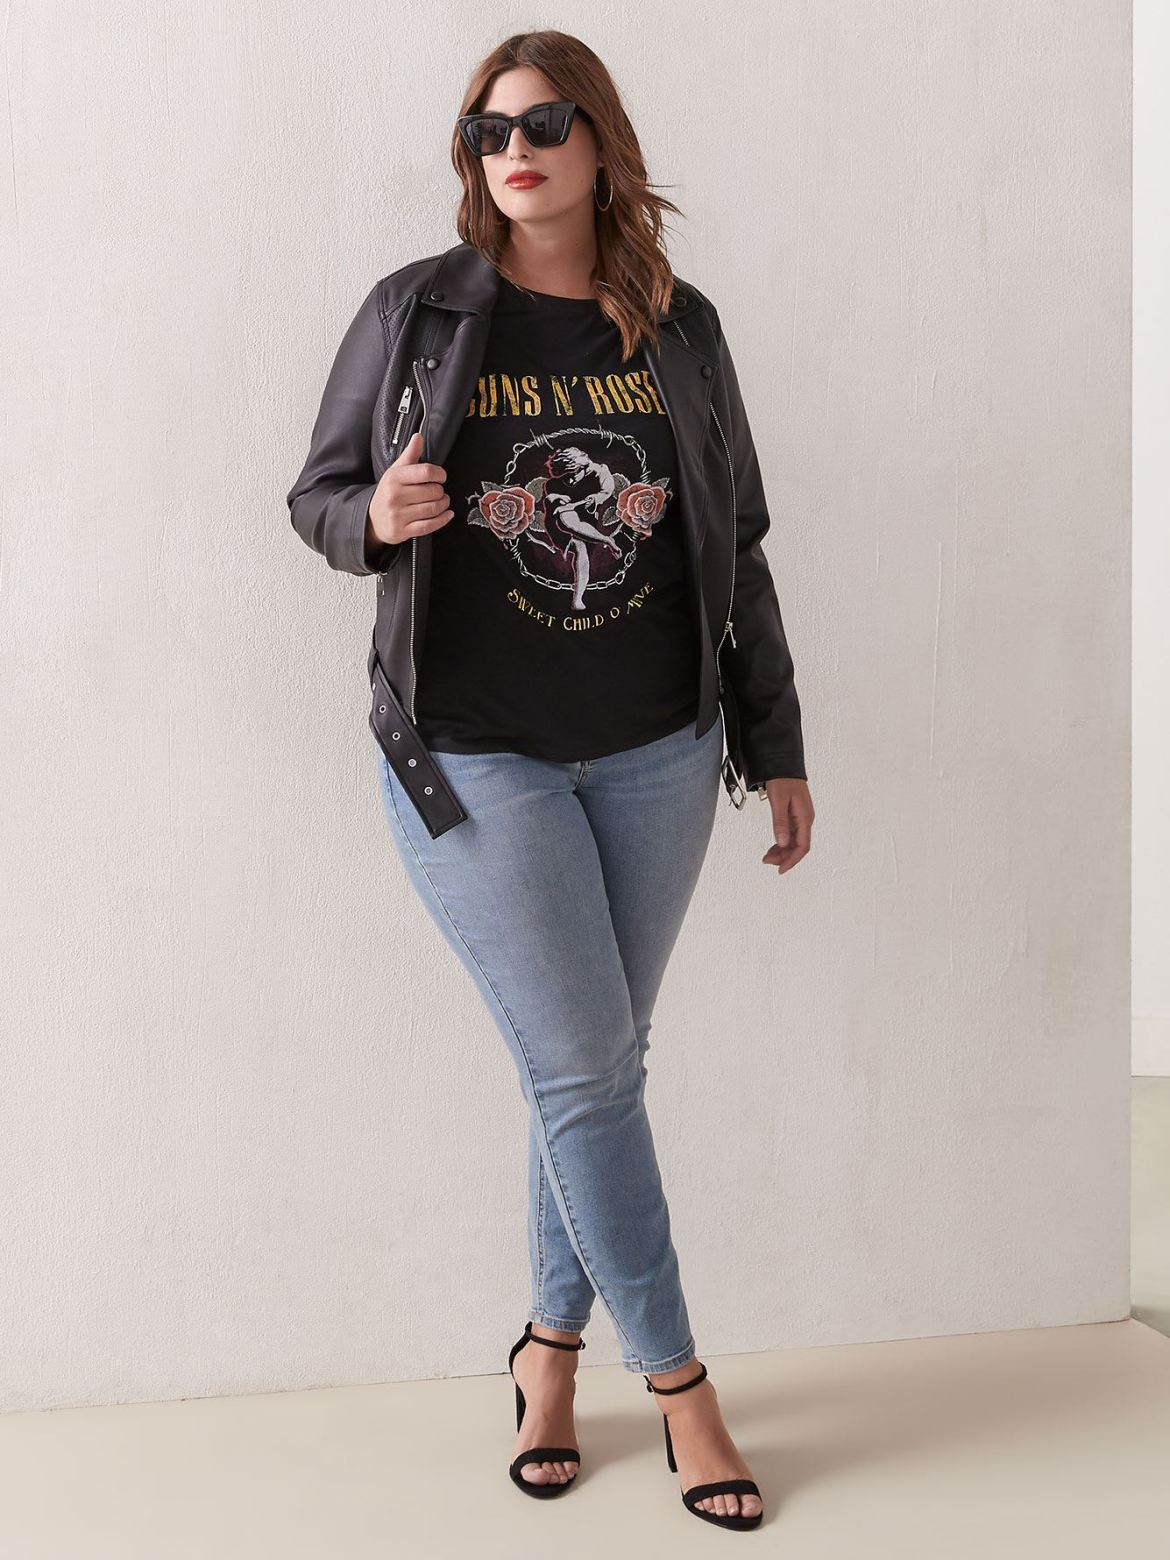 Guns N' Roses Boyfriend T-Shirt - Love & Legend